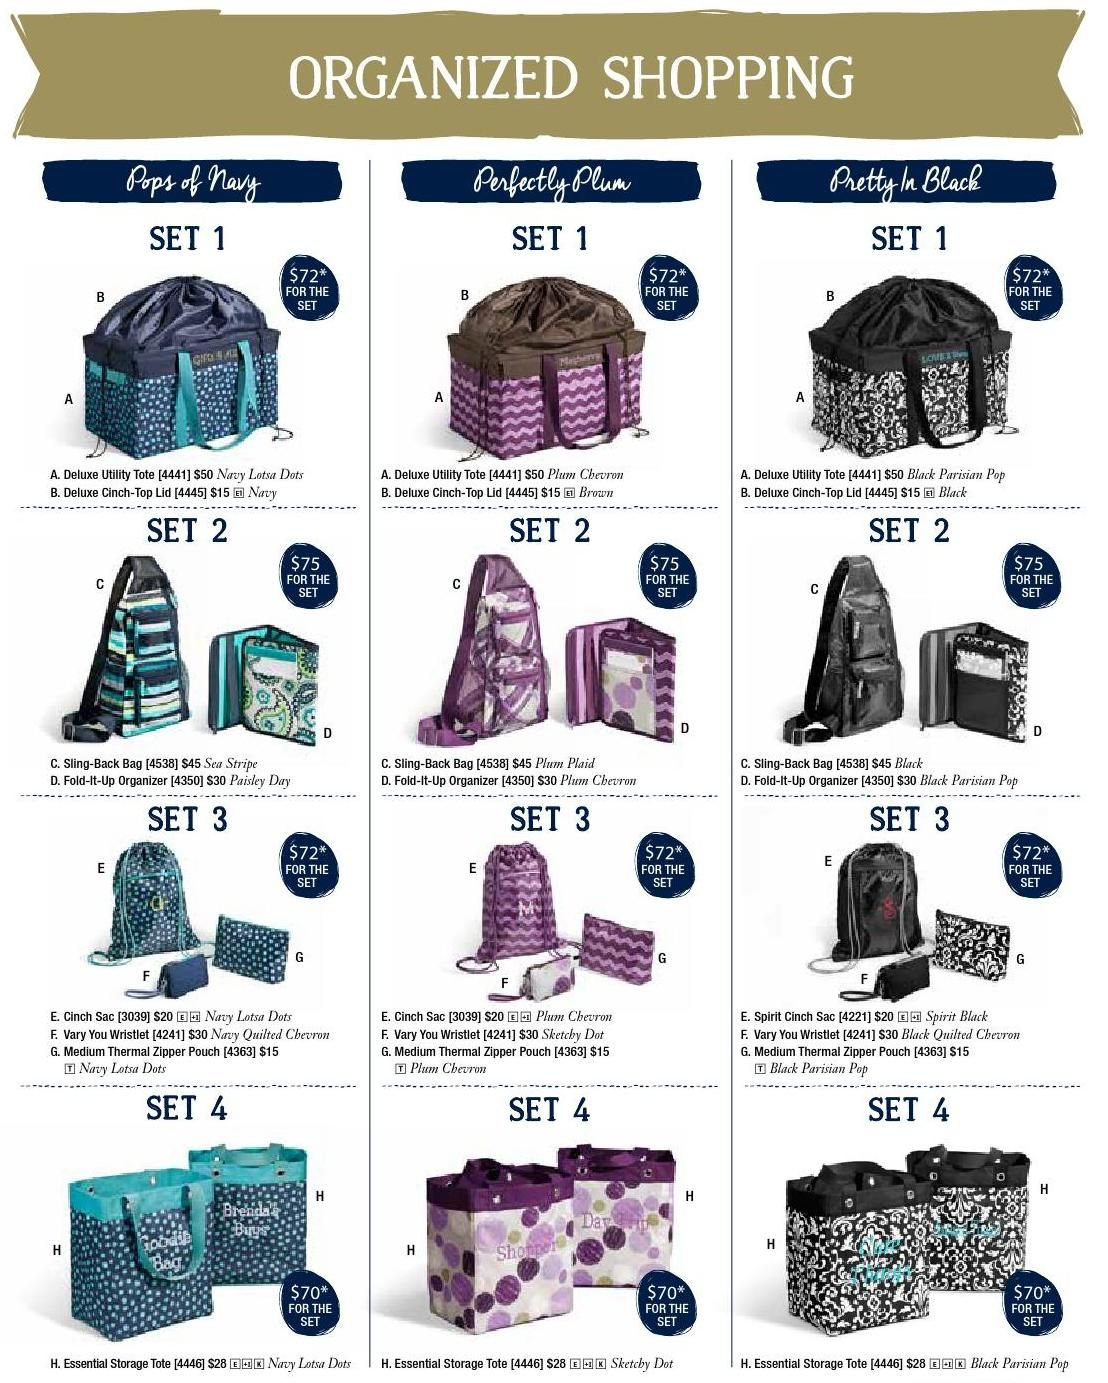 #ClippedOnIssuu from Thirty-One Catalog Fall 2014 organized shopping